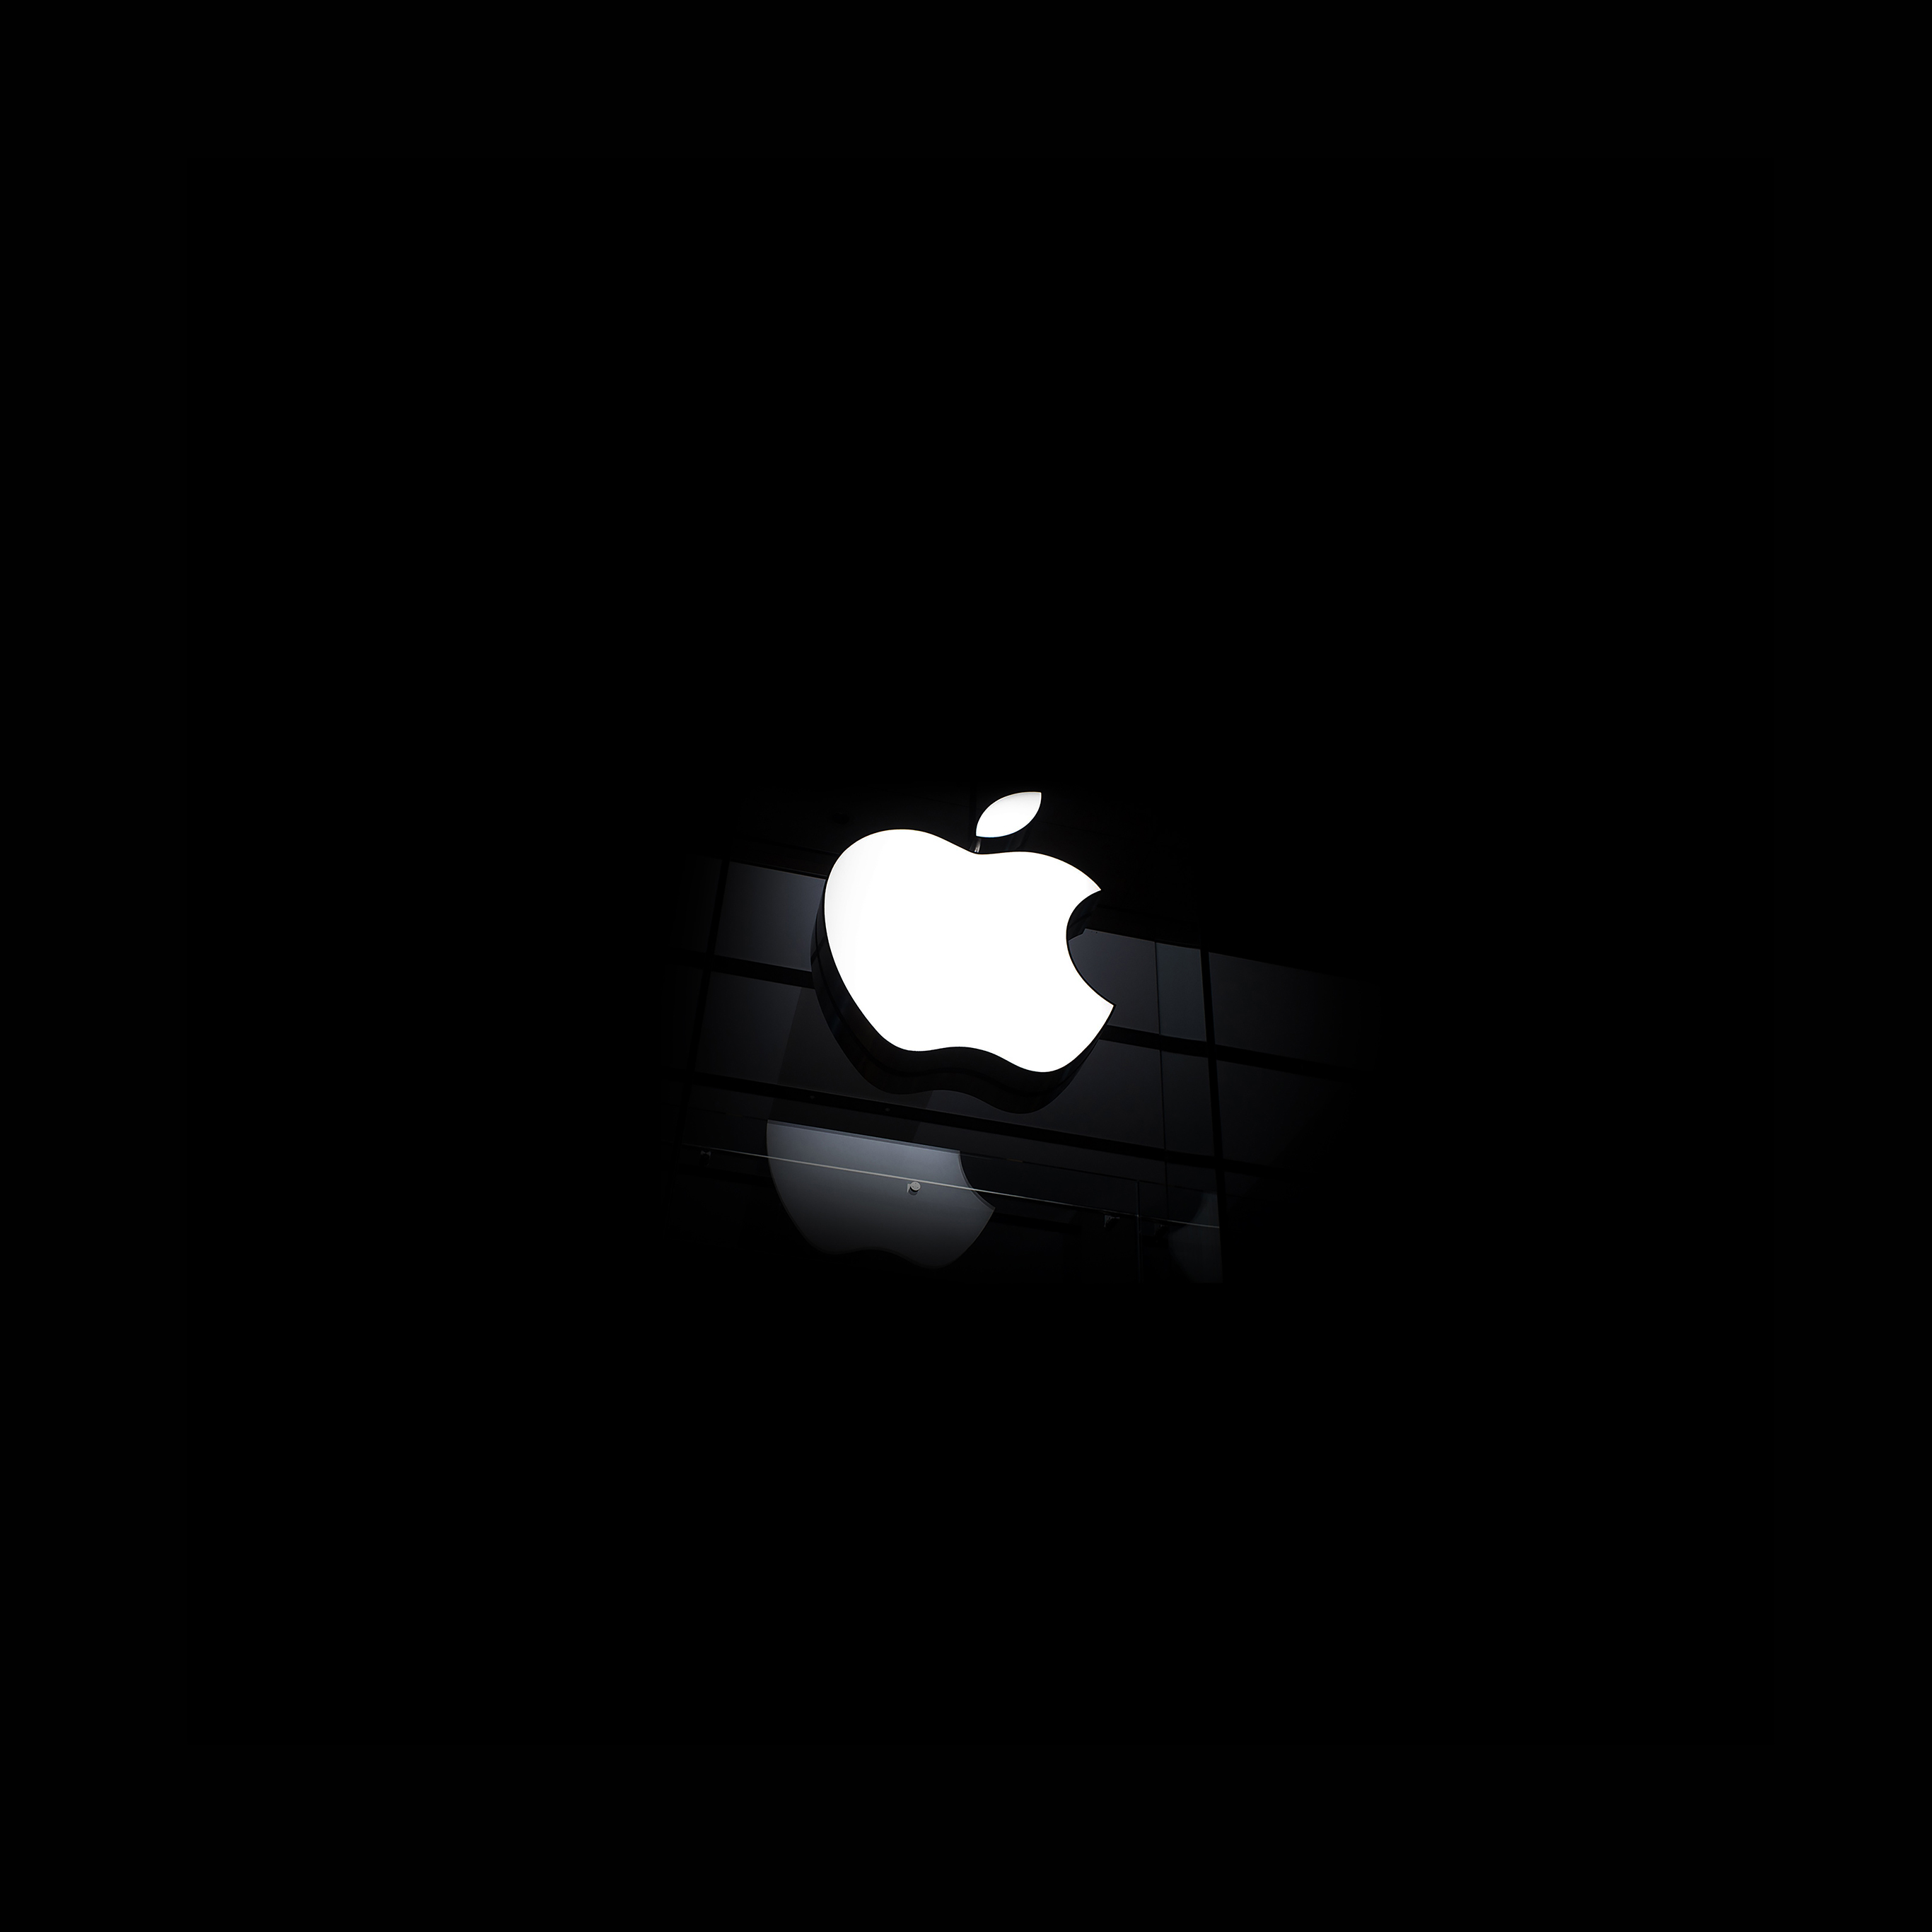 Androidpapersco Ac54 Wallpaper Apple Logo Glass Dark Iphone6 Ready